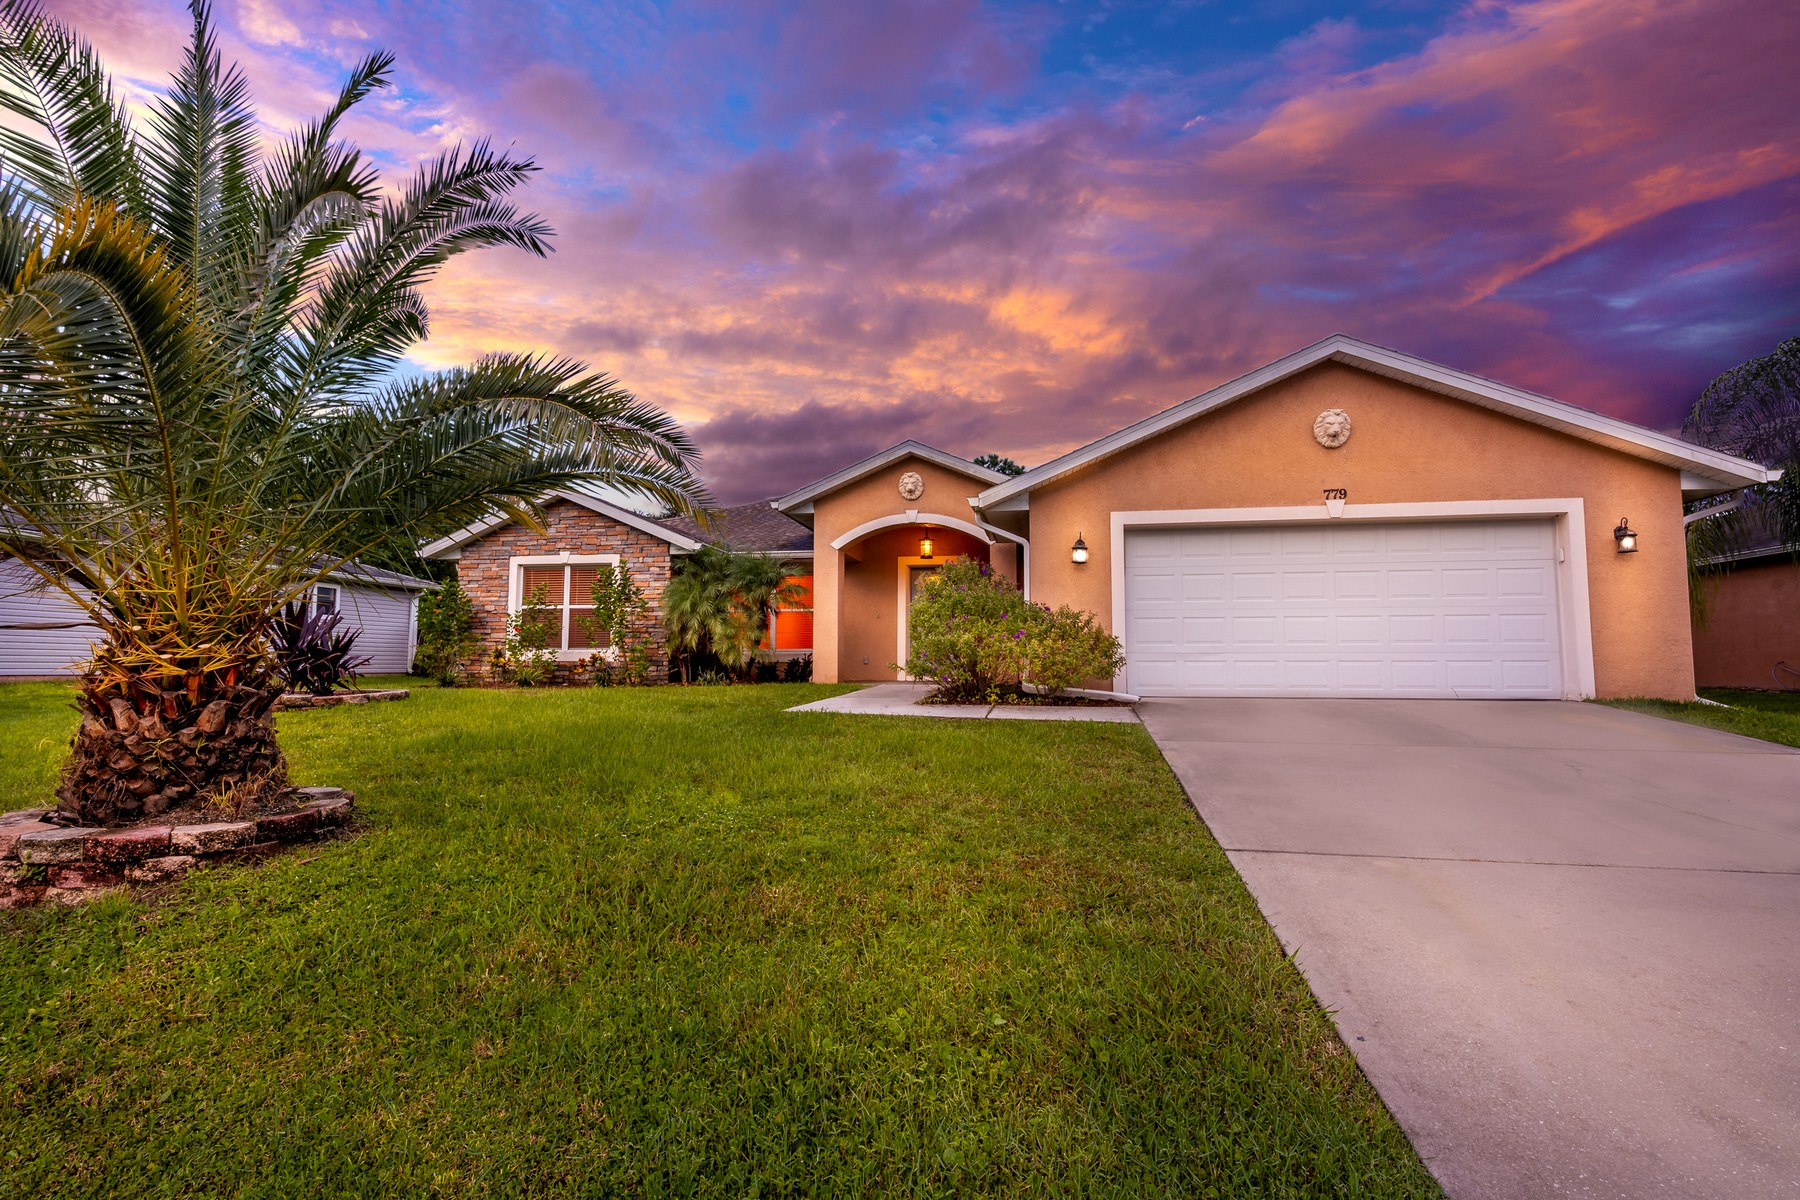 Single Family Homes for Active at Port Malabar Unit 37 779 Scott Avenue SW Palm Bay, Florida 32908 United States